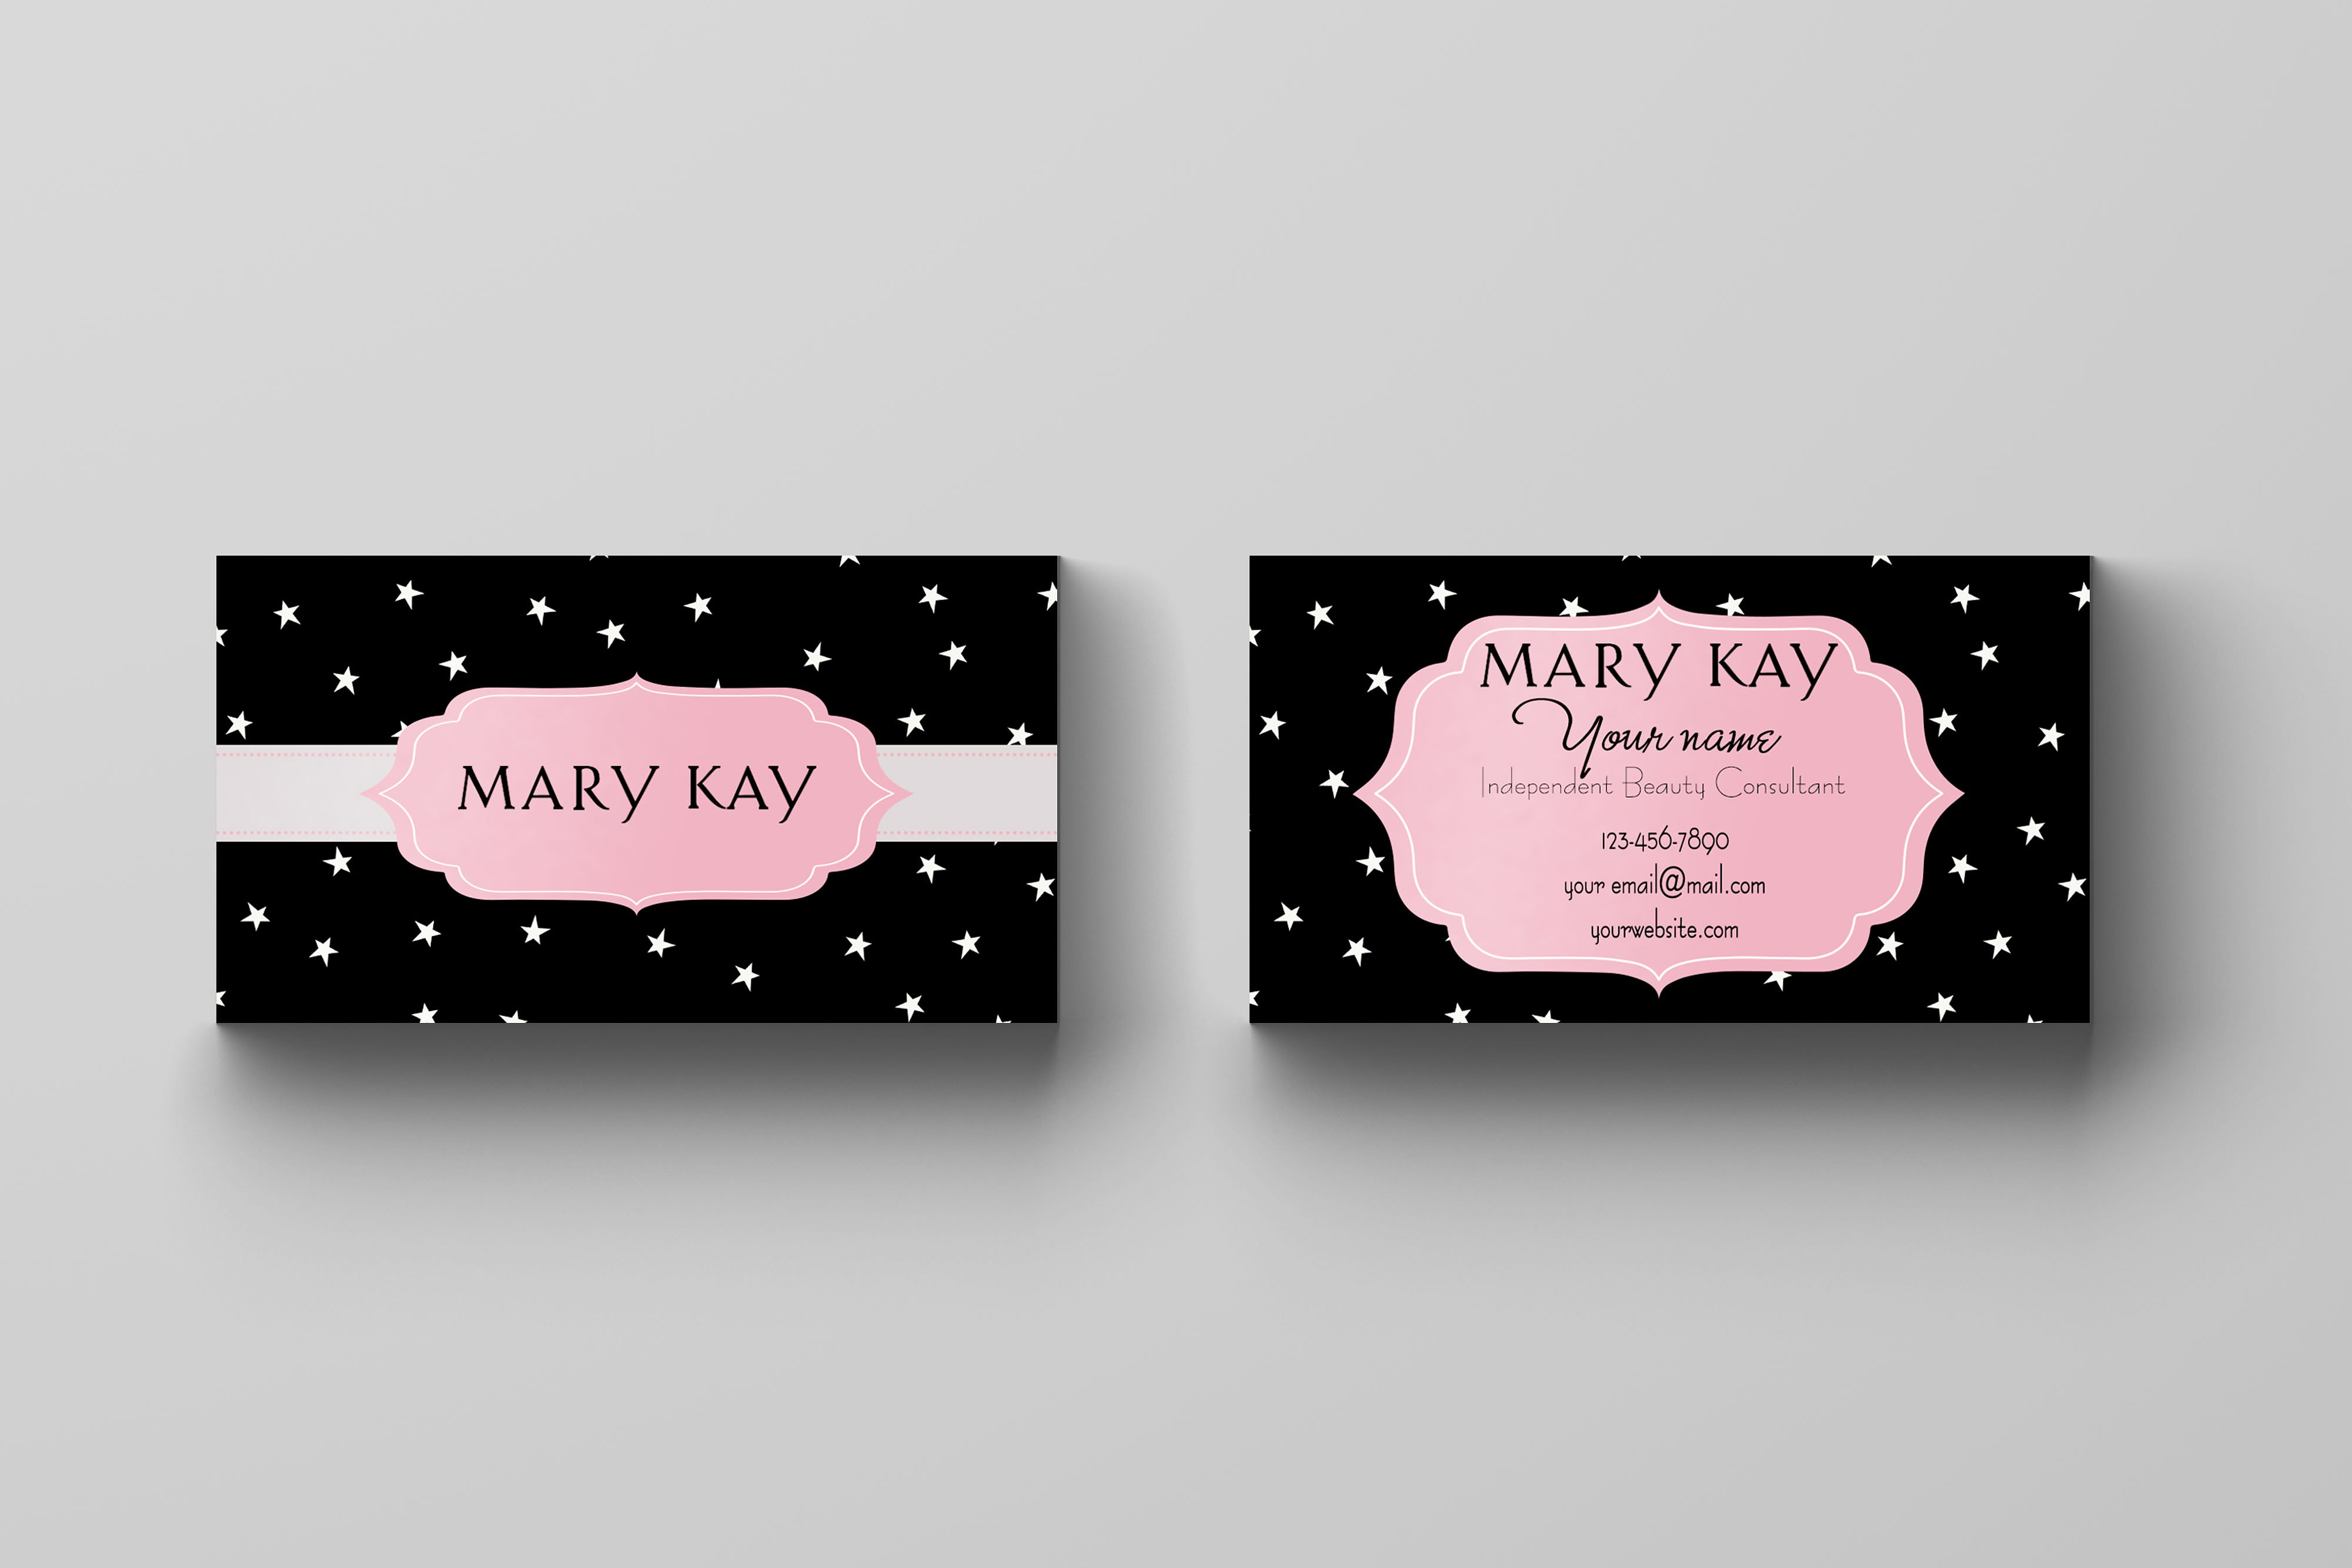 Kakao designs digital and printed marketing material direct sales high quality custom mary kay themed business cards colourmoves Gallery